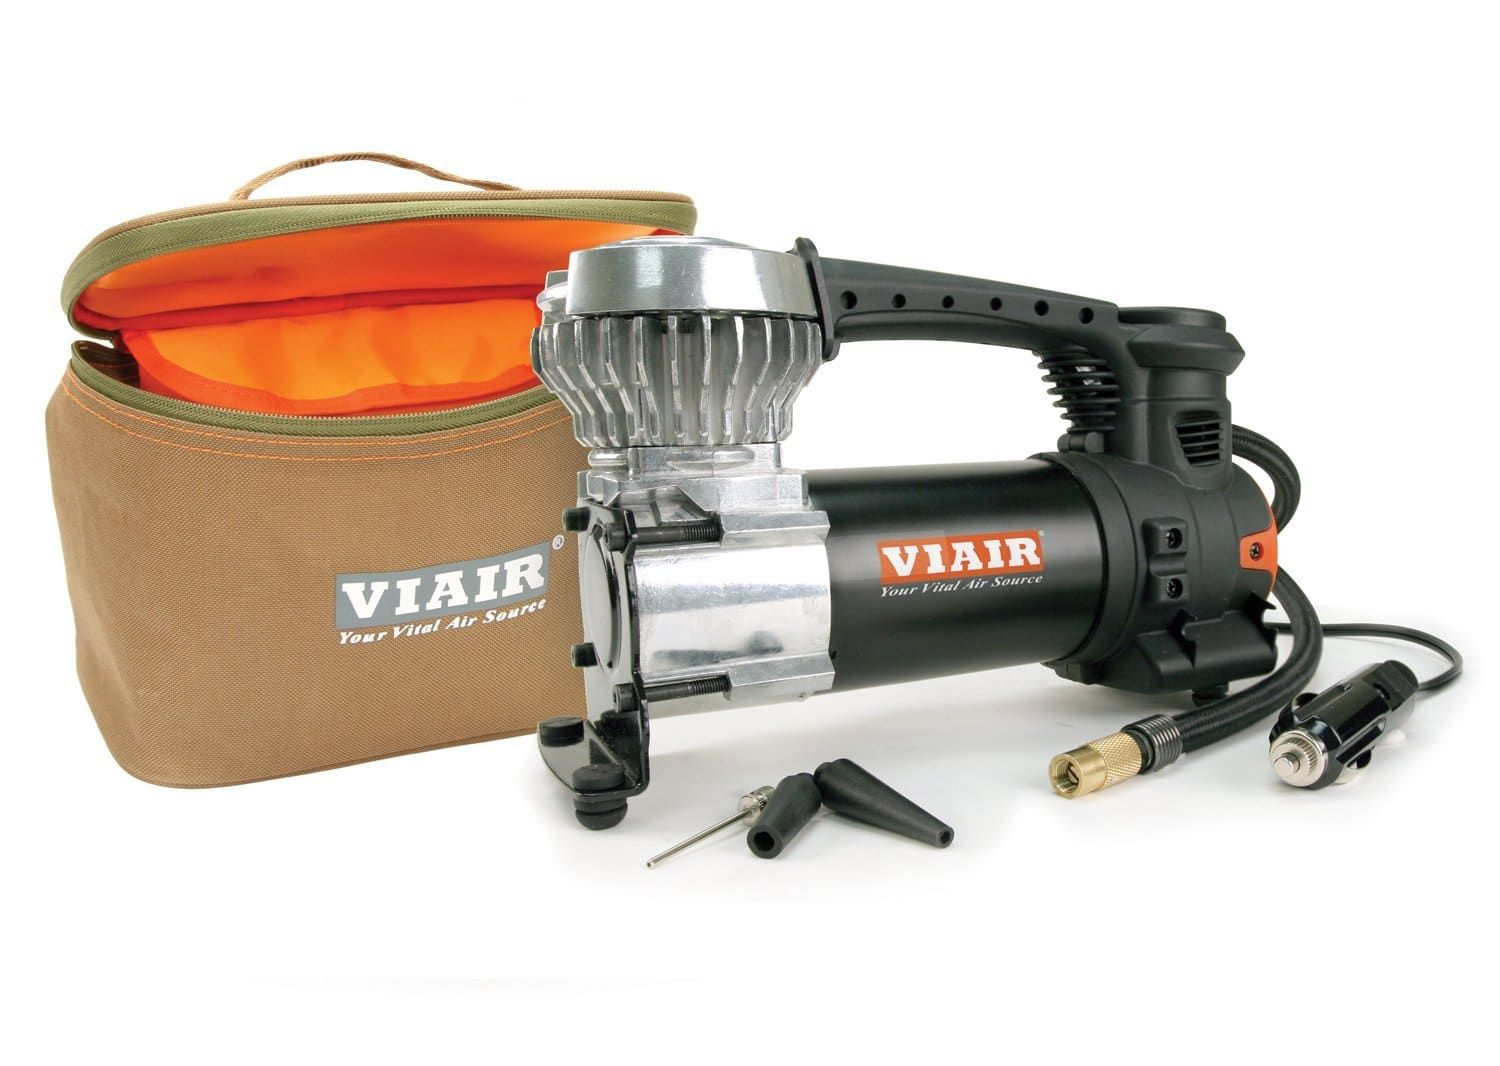 Top 10 Best Portable Air Compressors in 2020 Best